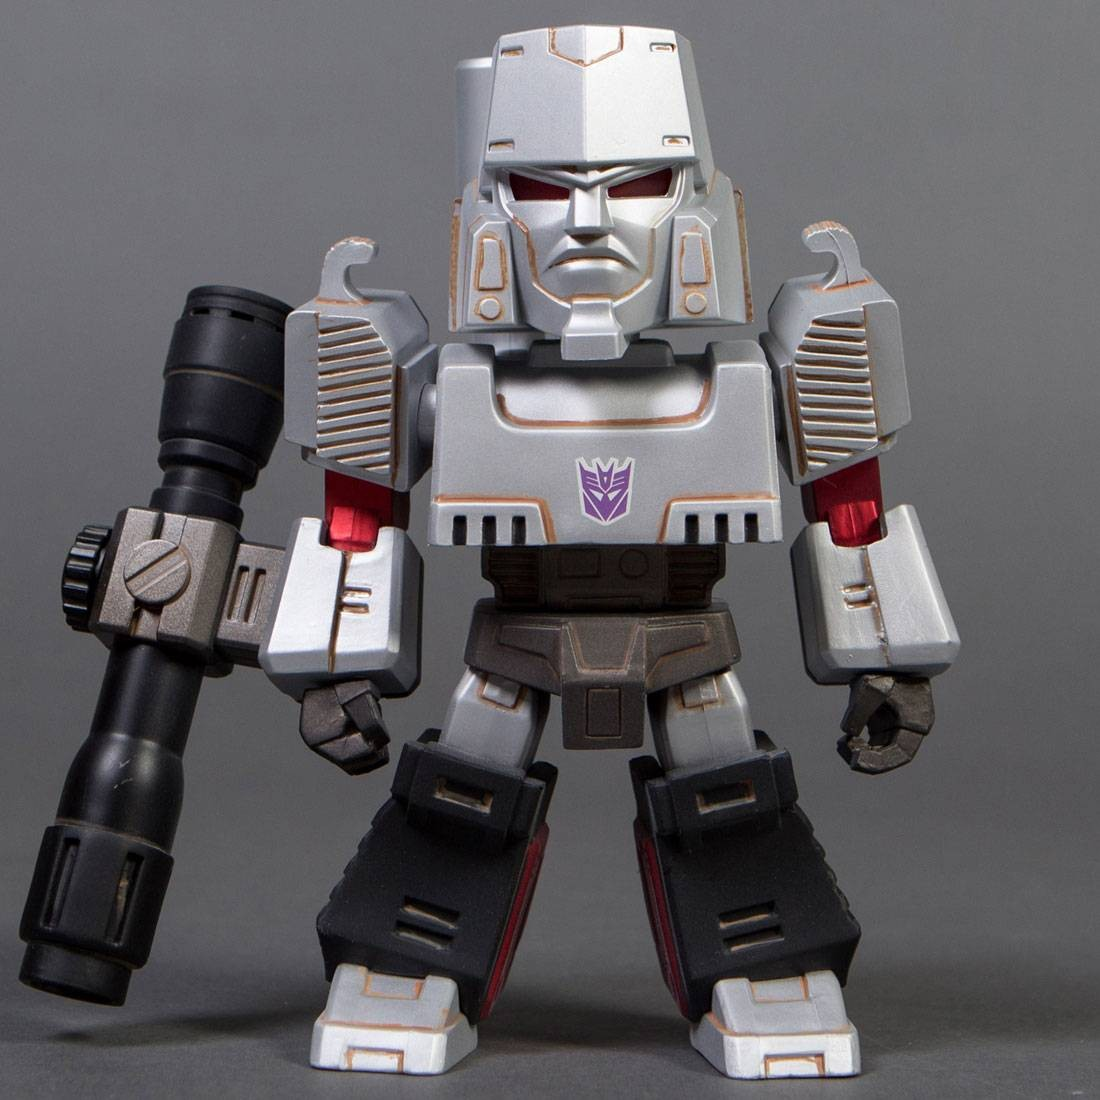 BAIT x Transformers x Switch Collectibles Megatron 6.5 Inch Figure - Antique Metals Edition